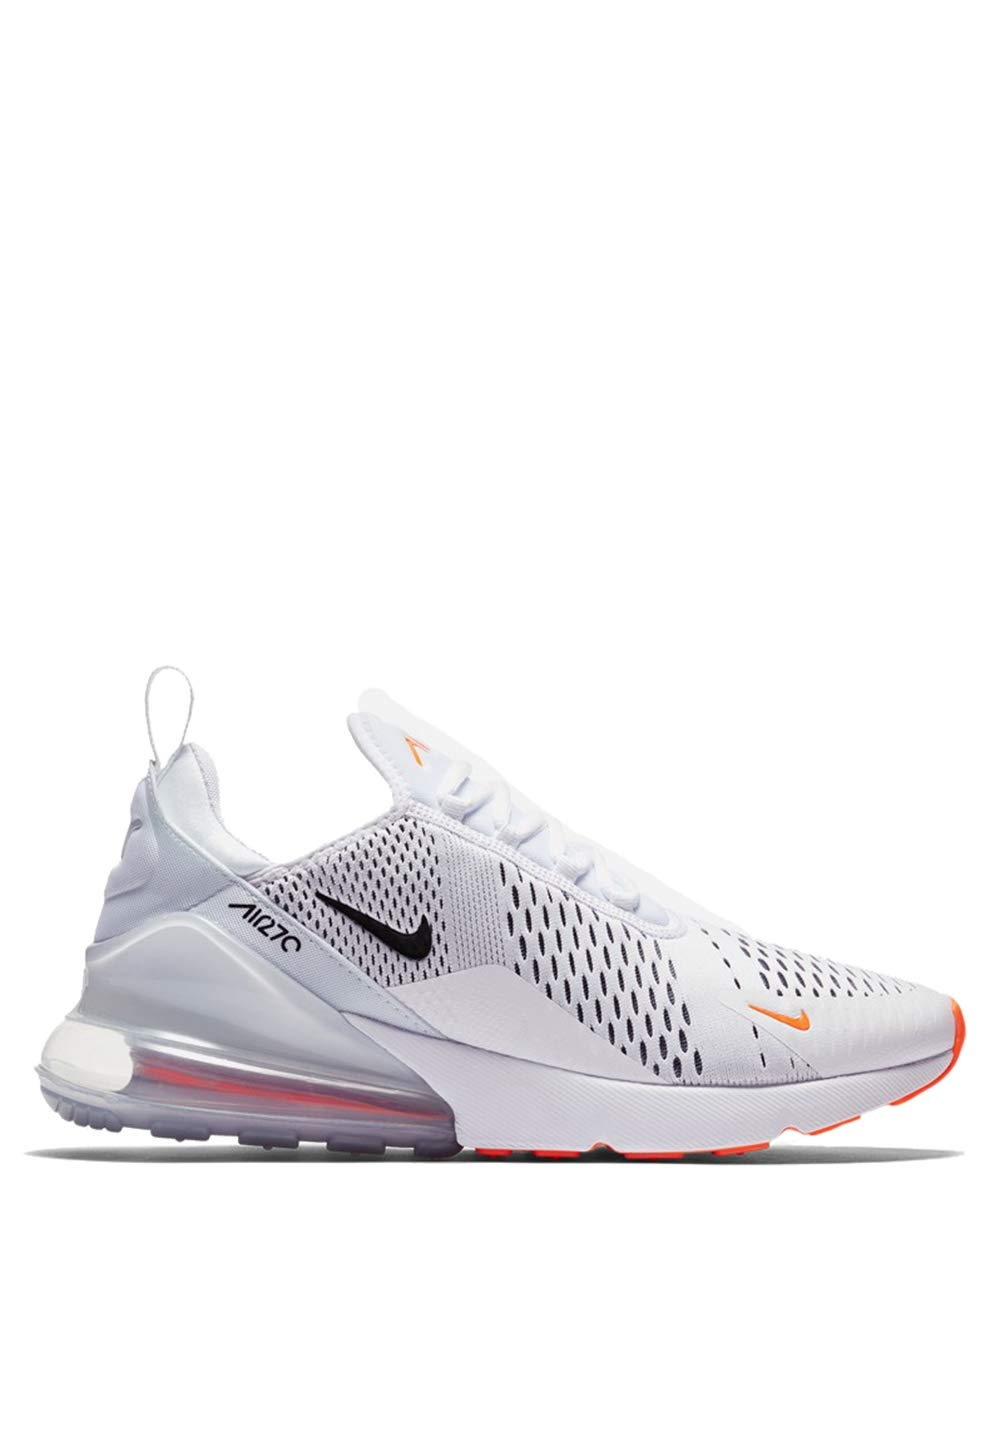 timeless design 6b0ec 96982 Galleon - Nike Mens Air Max 270 Running Shoes White Black Total Orange  AH8050-106 Size 8